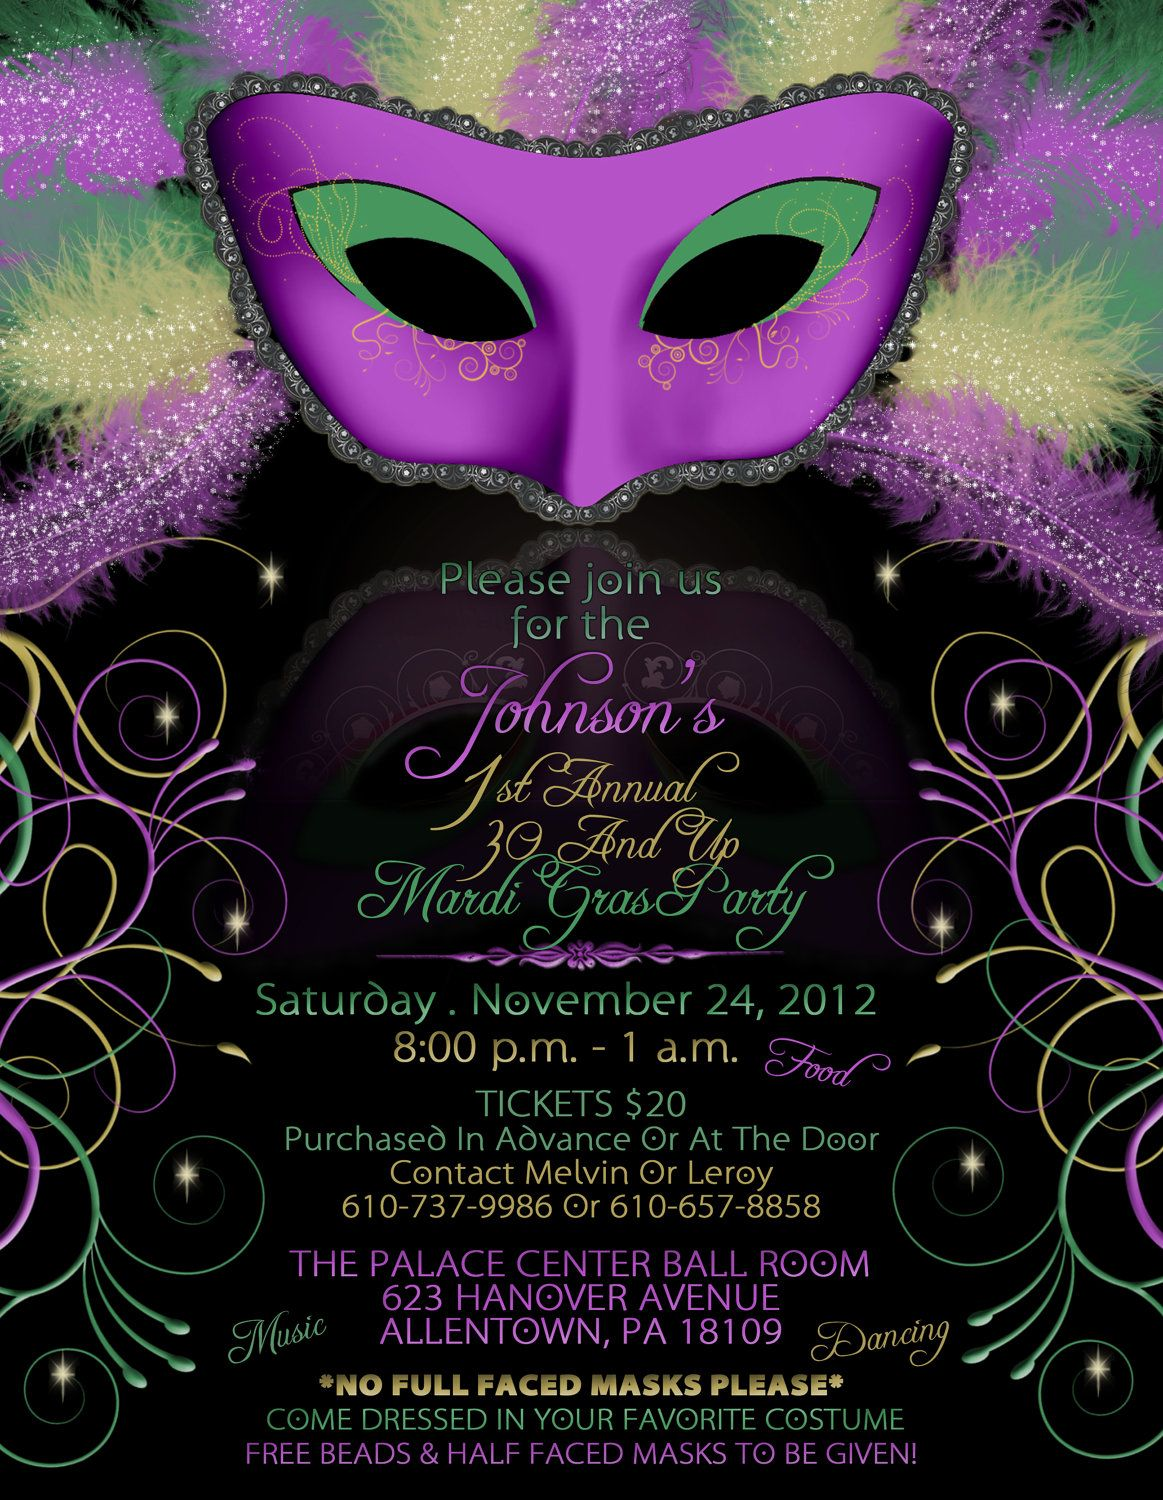 Mardi Gras Wedding Invitation Wording Google Search Mardi Gras